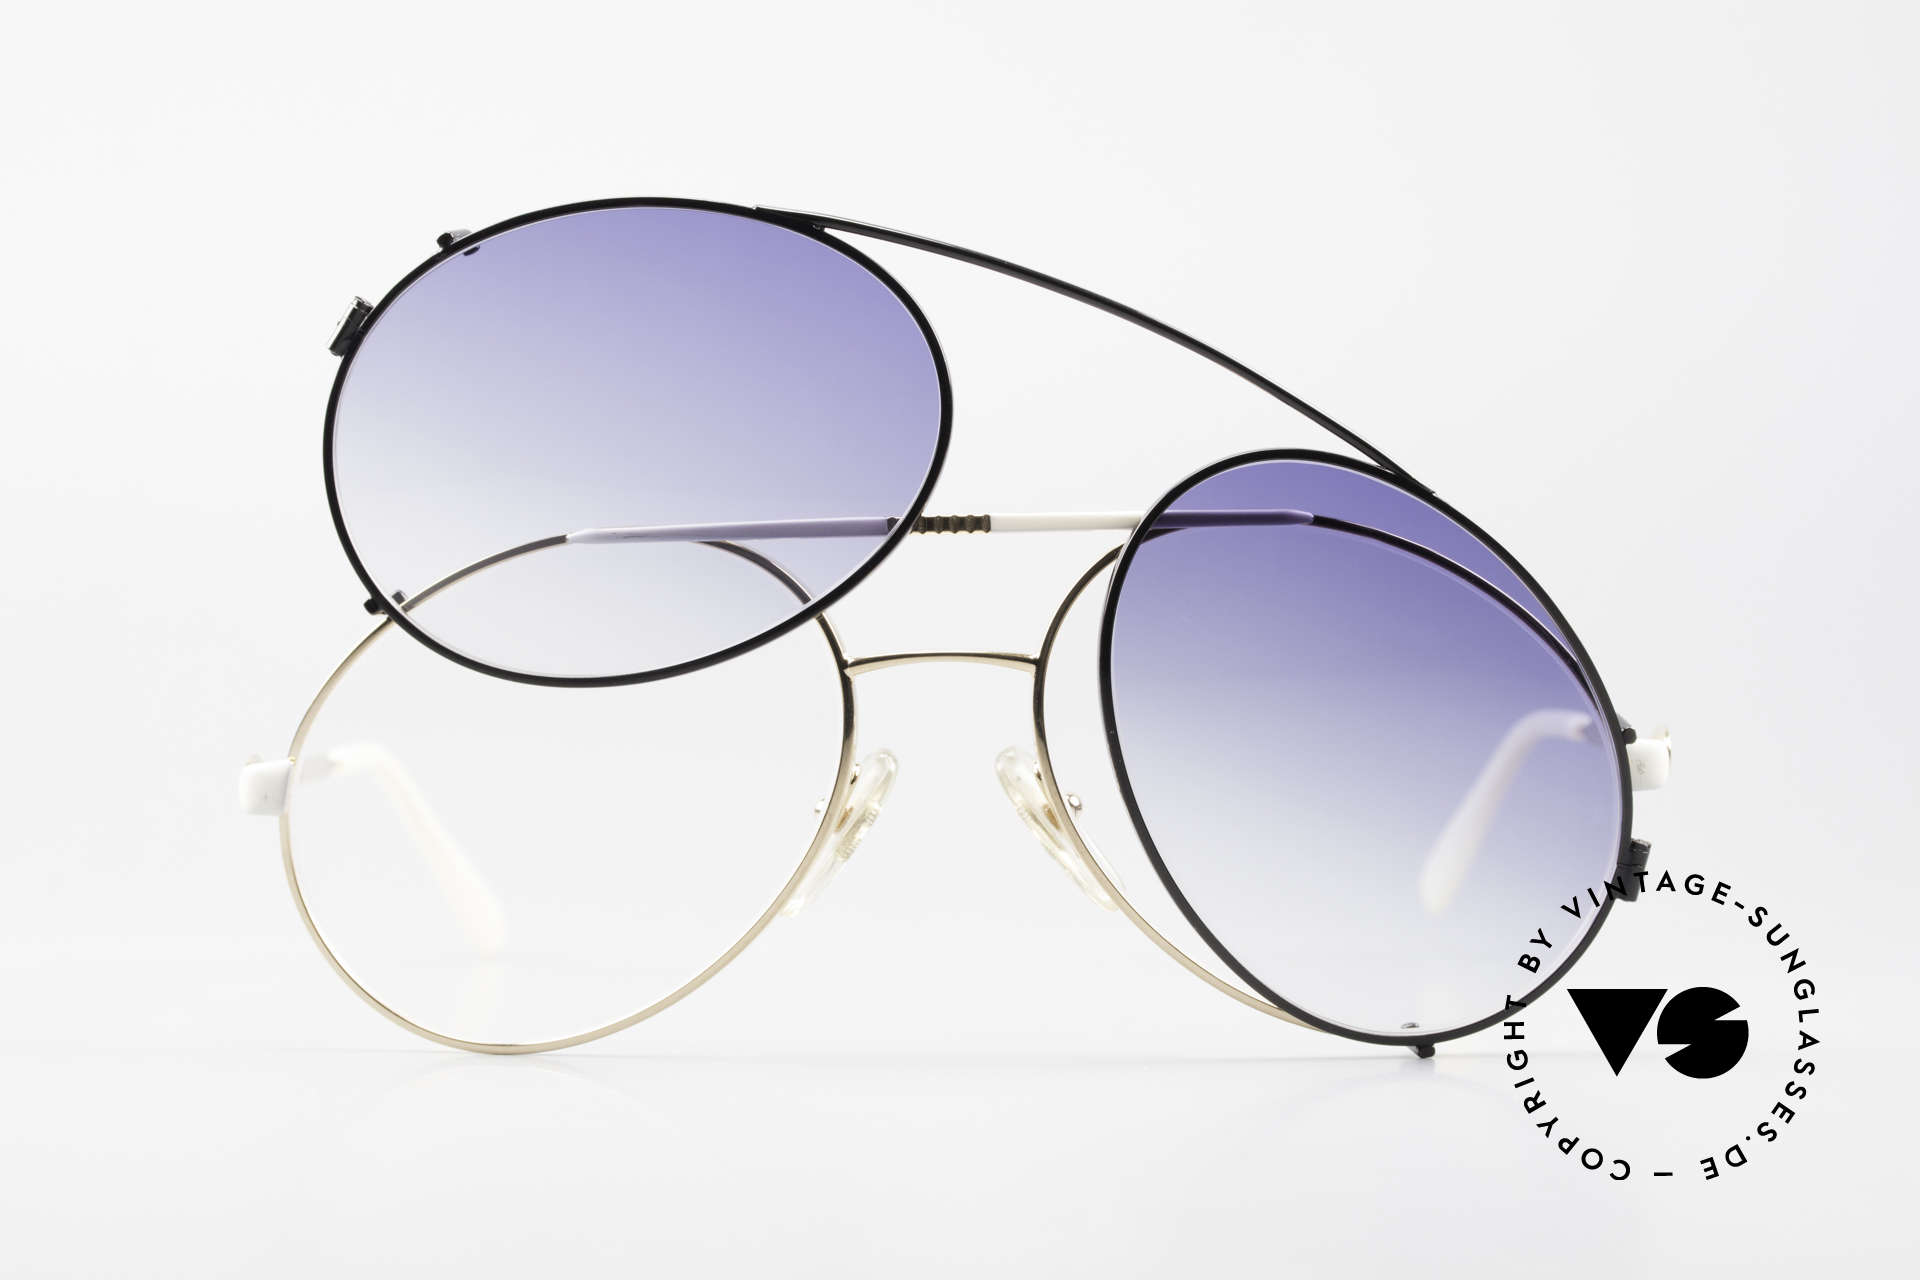 Bugatti 64319 80's Sunglasses With Clip On, great contrast: black clip-on vs. white frame, Made for Men